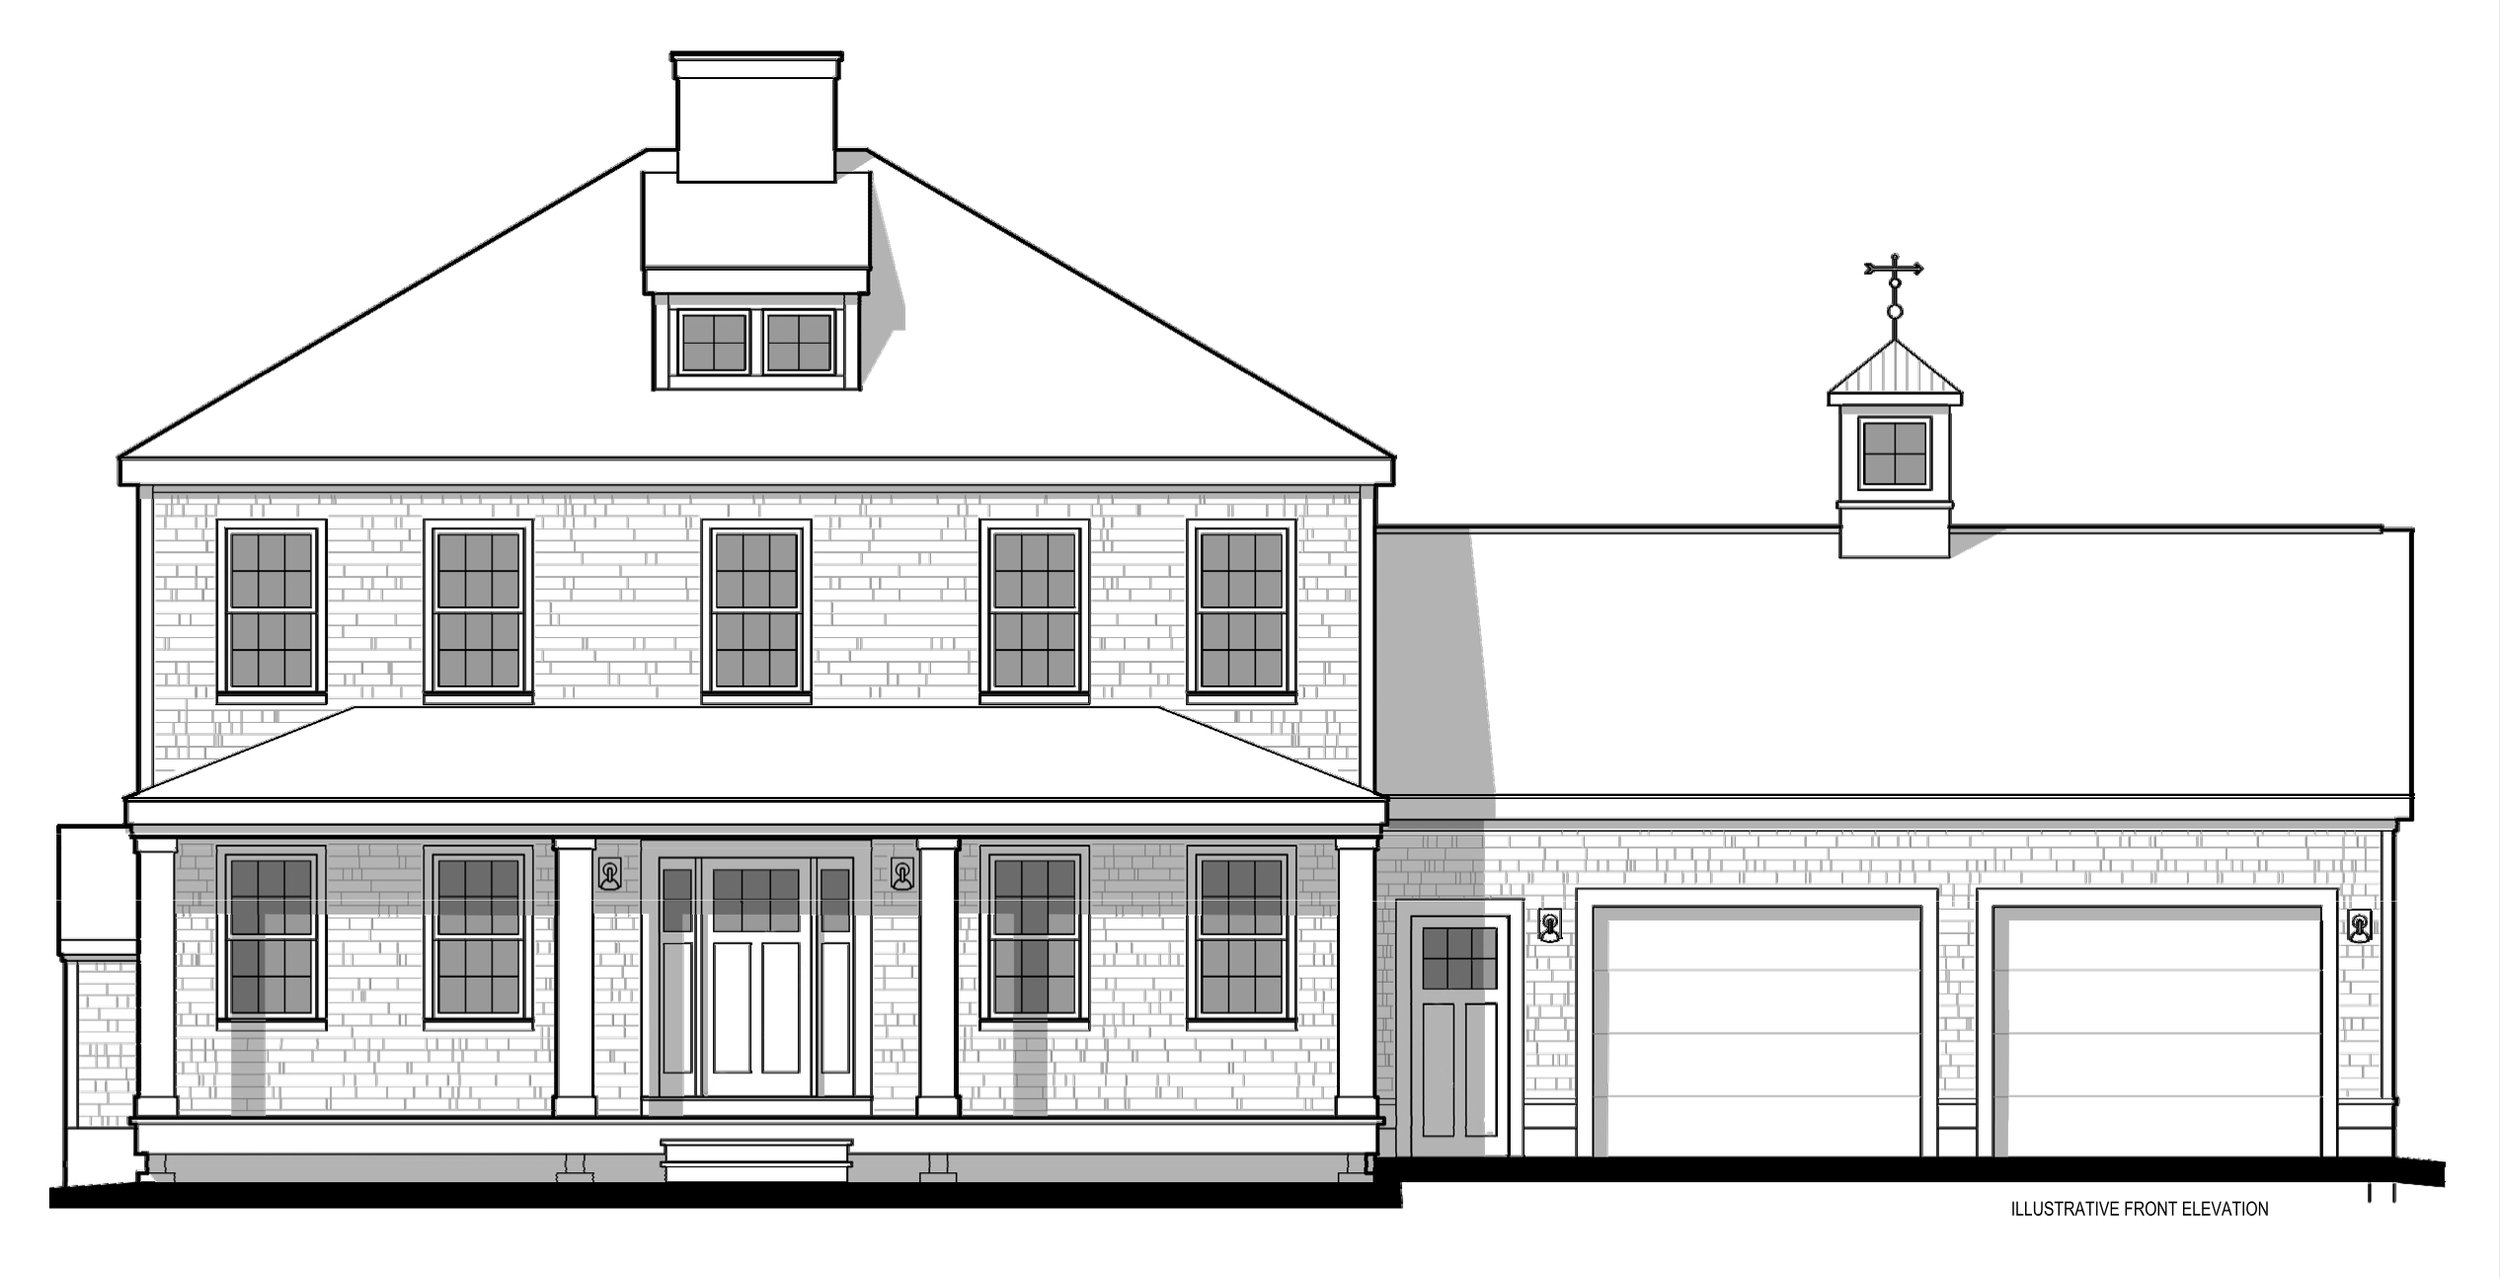 62 sgd front elevation from plans.jpg